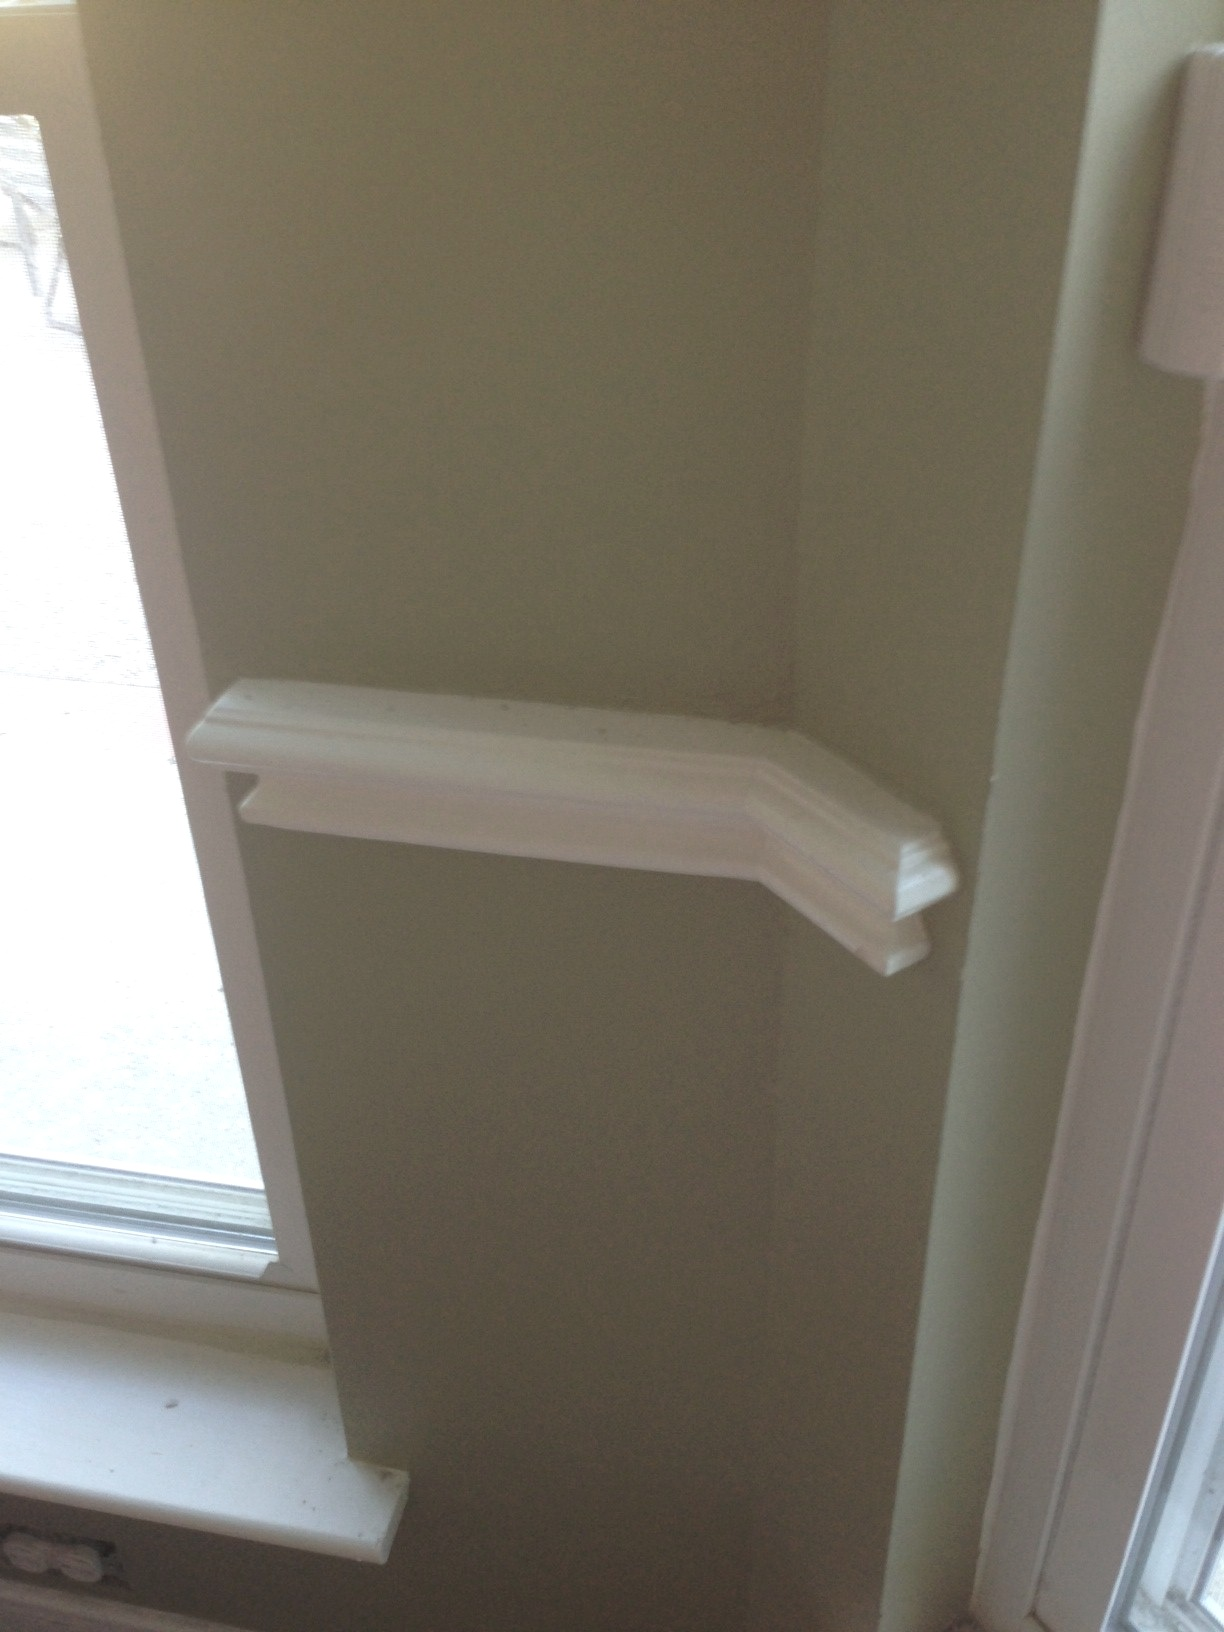 Many times crown moulding or a chair rail will run around the room up until the point the wall stops, leaving no place to die the moulding into. If chair rail was to be used in this room, trimming out the windows would have been completed the look properly.